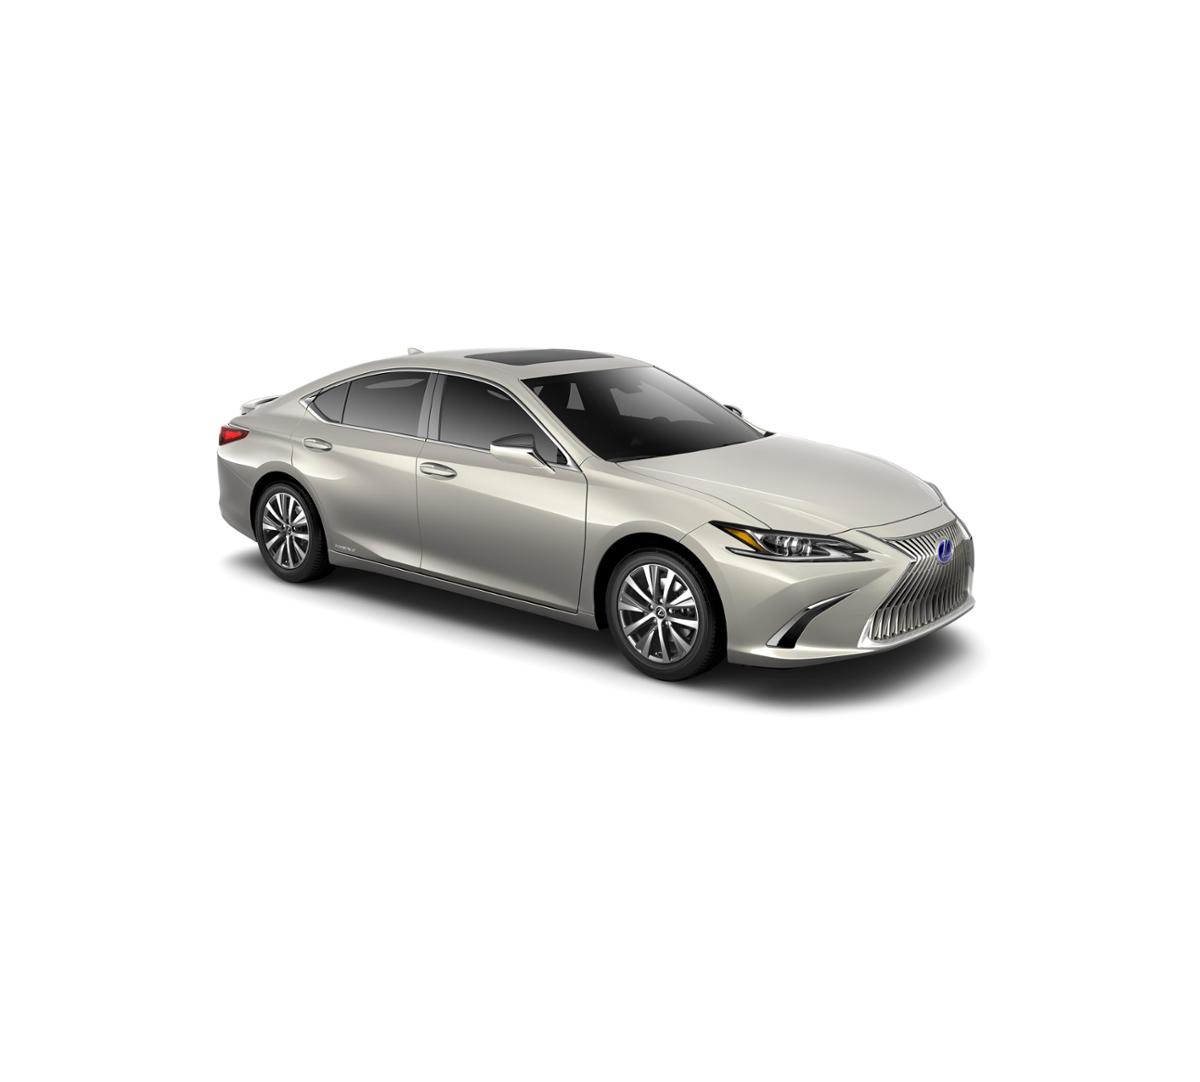 2019 Lexus Es: New 2019 Lexus ES 300h For Sale In Farmingdale, NY